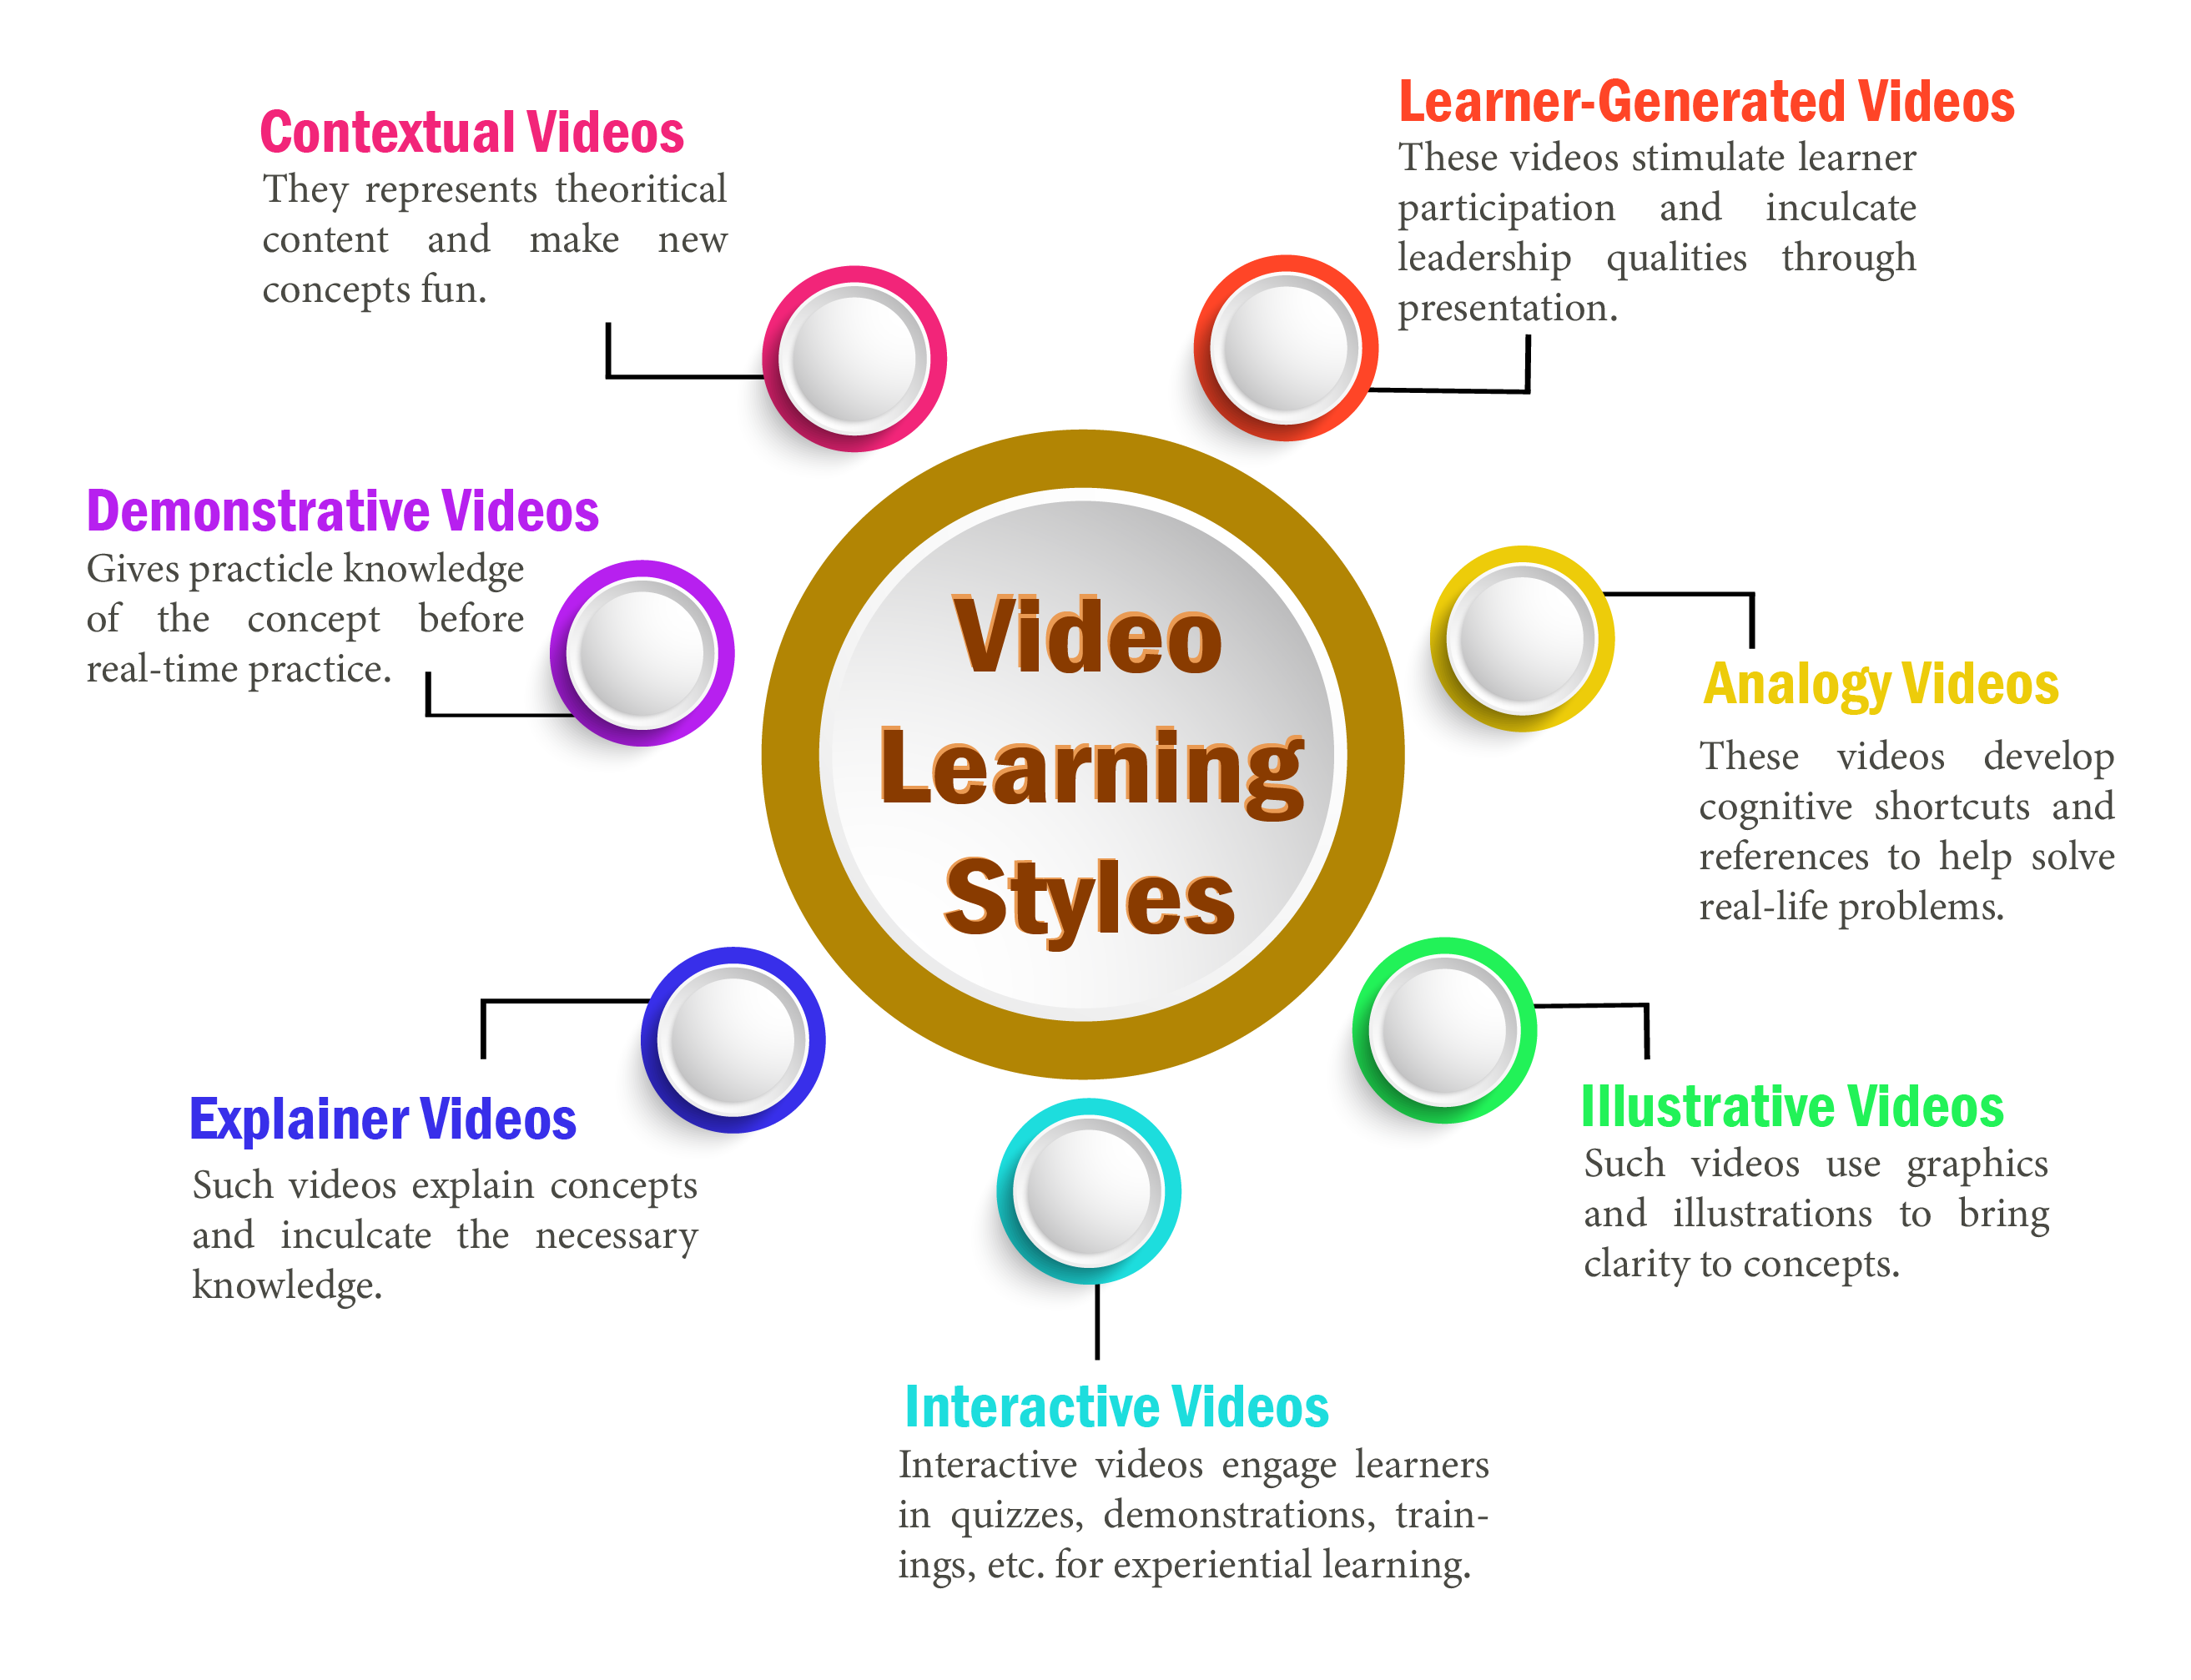 Video Learning Styles